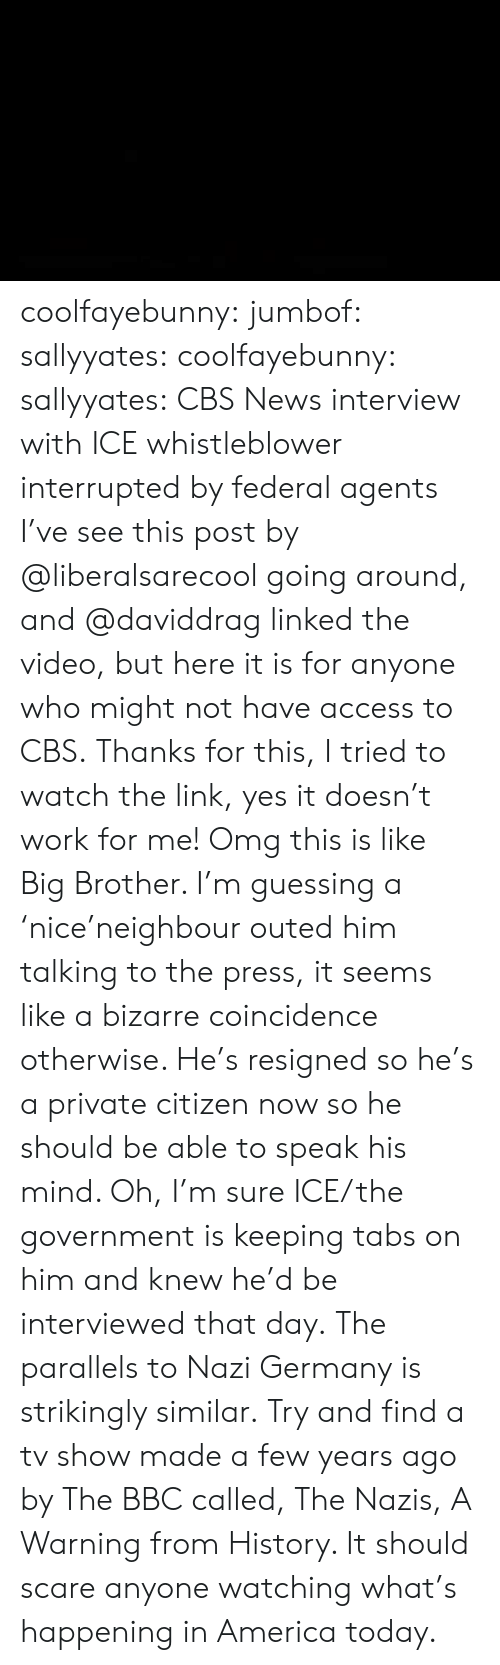 America, News, and Omg: coolfayebunny: jumbof:   sallyyates:   coolfayebunny:  sallyyates:   CBS News interview with ICE whistleblower interrupted by federal agents I've see this post by @liberalsarecool going around, and @daviddrag linked the video, but here it is for anyone who might not have access to CBS.   Thanks for this, I tried to watch the link, yes it doesn't work for me!  Omg this is like Big Brother. I'm guessing a 'nice'neighbour outed him talking to the press, it seems like a bizarre coincidence otherwise.  He's resigned so he's a private citizen now so he should be able to speak his mind.   Oh, I'm sure ICE/the government is keeping tabs on him and knew he'd be interviewed that day.   The parallels to Nazi Germany is strikingly similar.   Try and find a tv show made a few years ago by The BBC called, The Nazis, A Warning from History. It should scare anyone watching what's happening in America today.